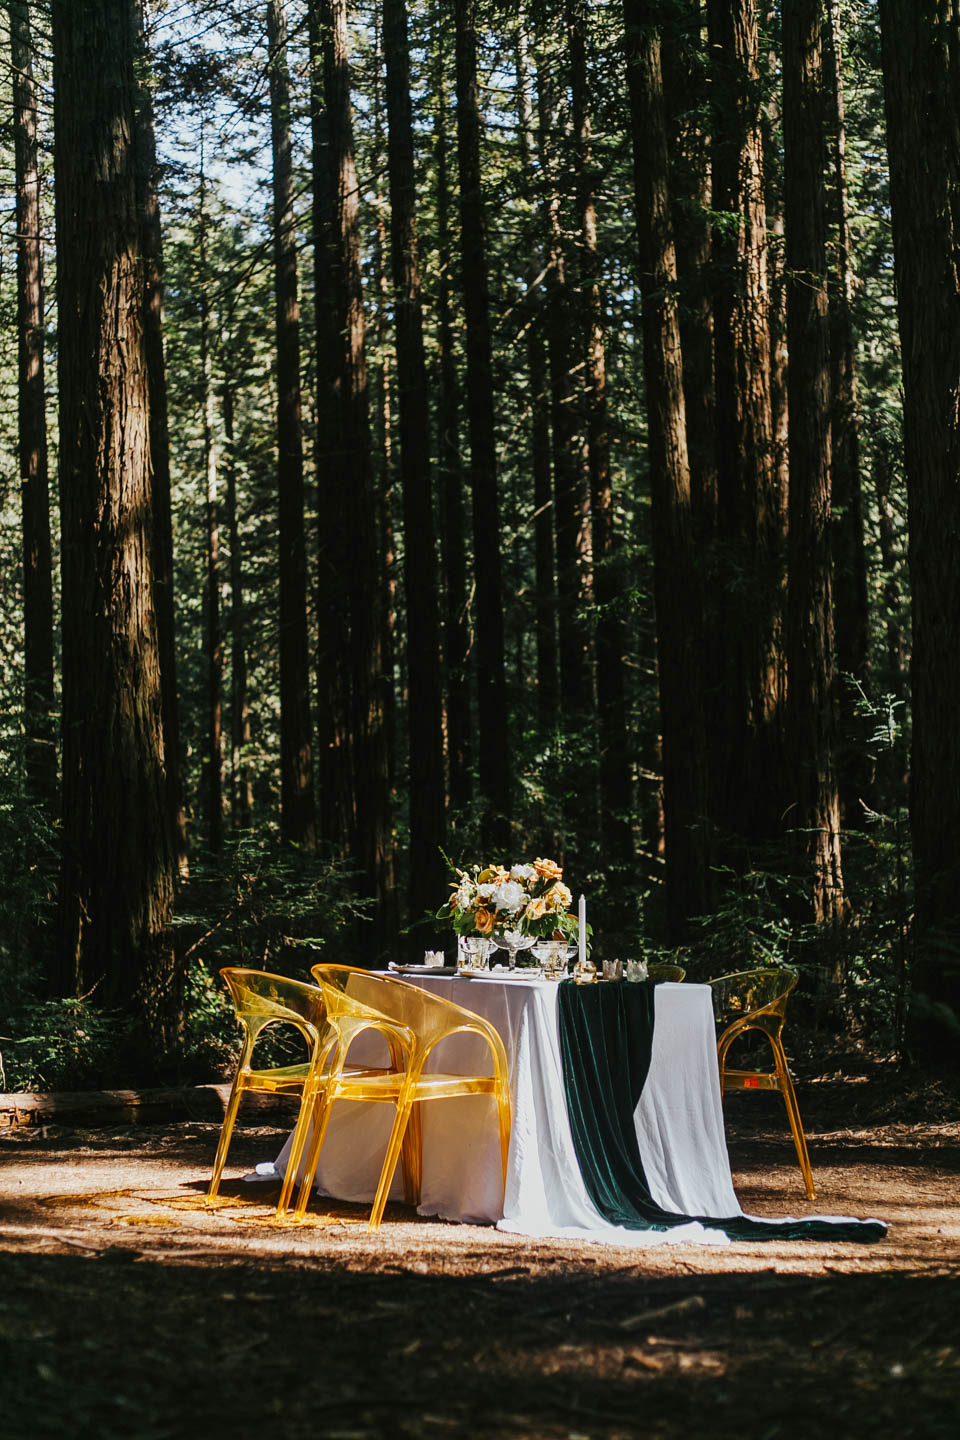 RedWoods_Styled_May2-56-2.jpg